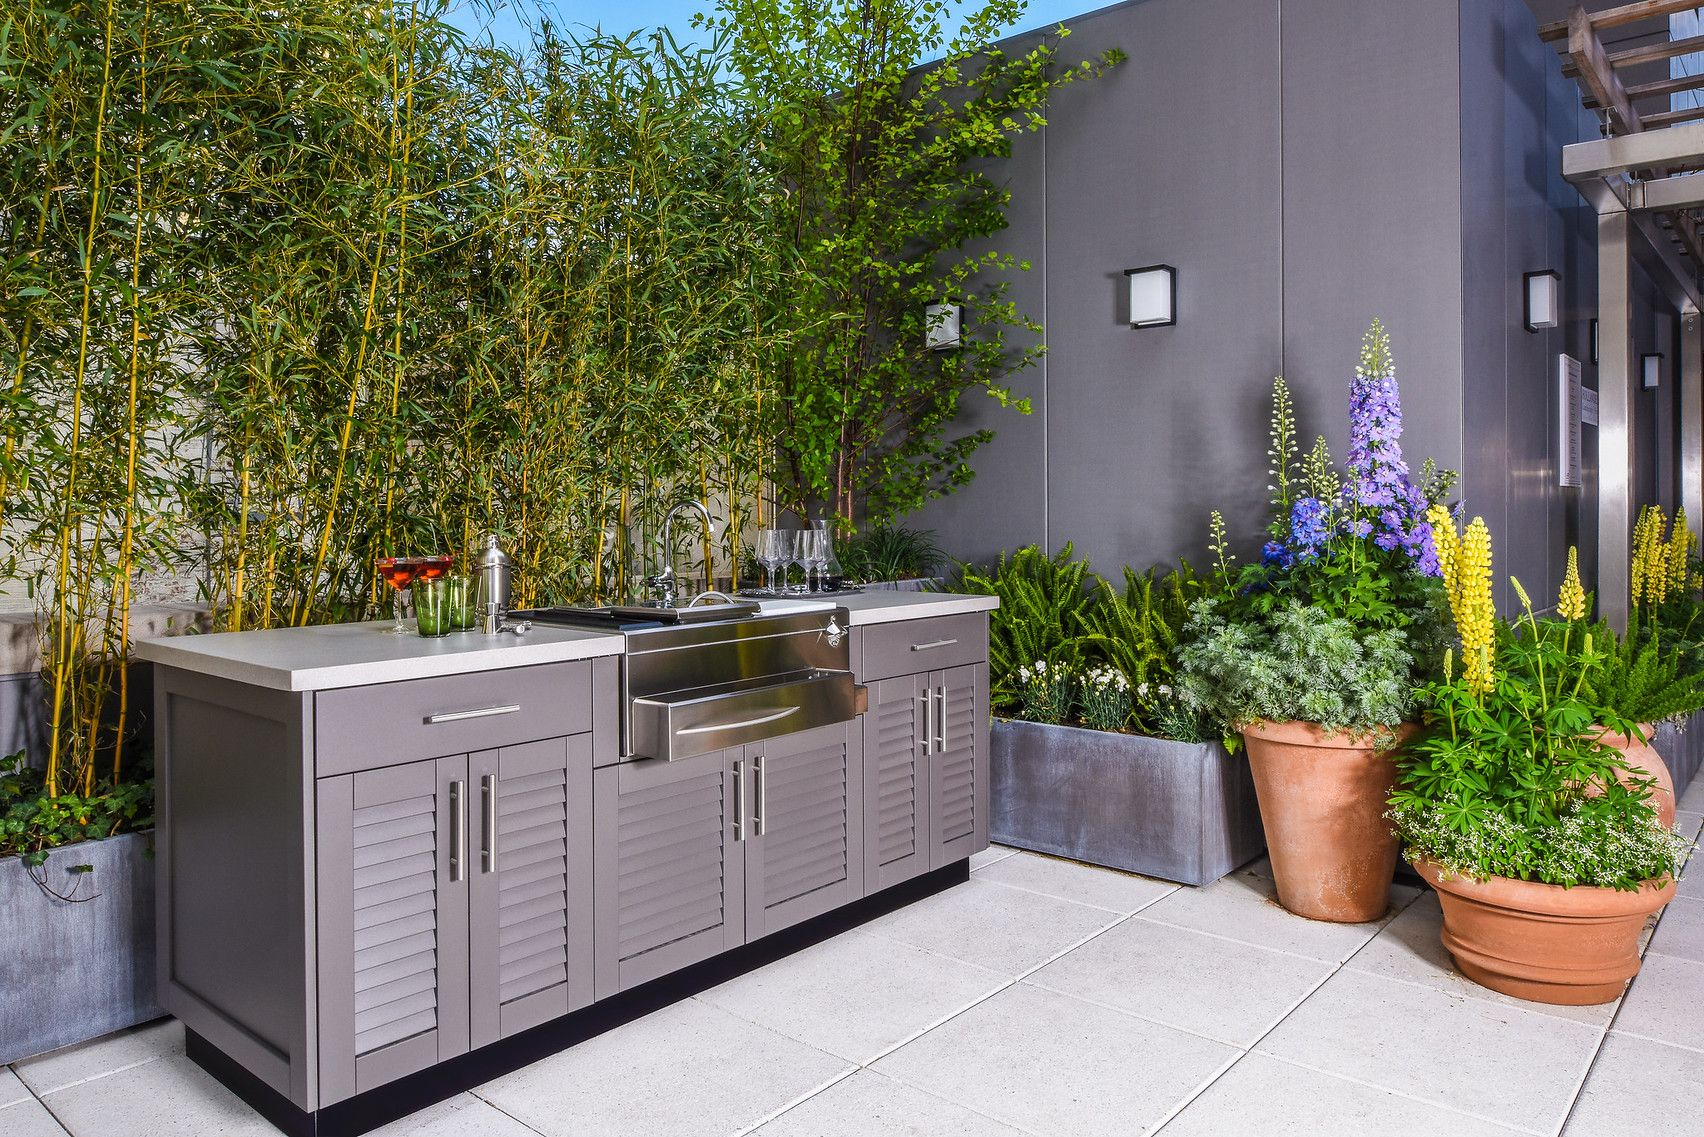 Best Overview Of Projects Danver Stainless Outdoor Kitchens 400 x 300